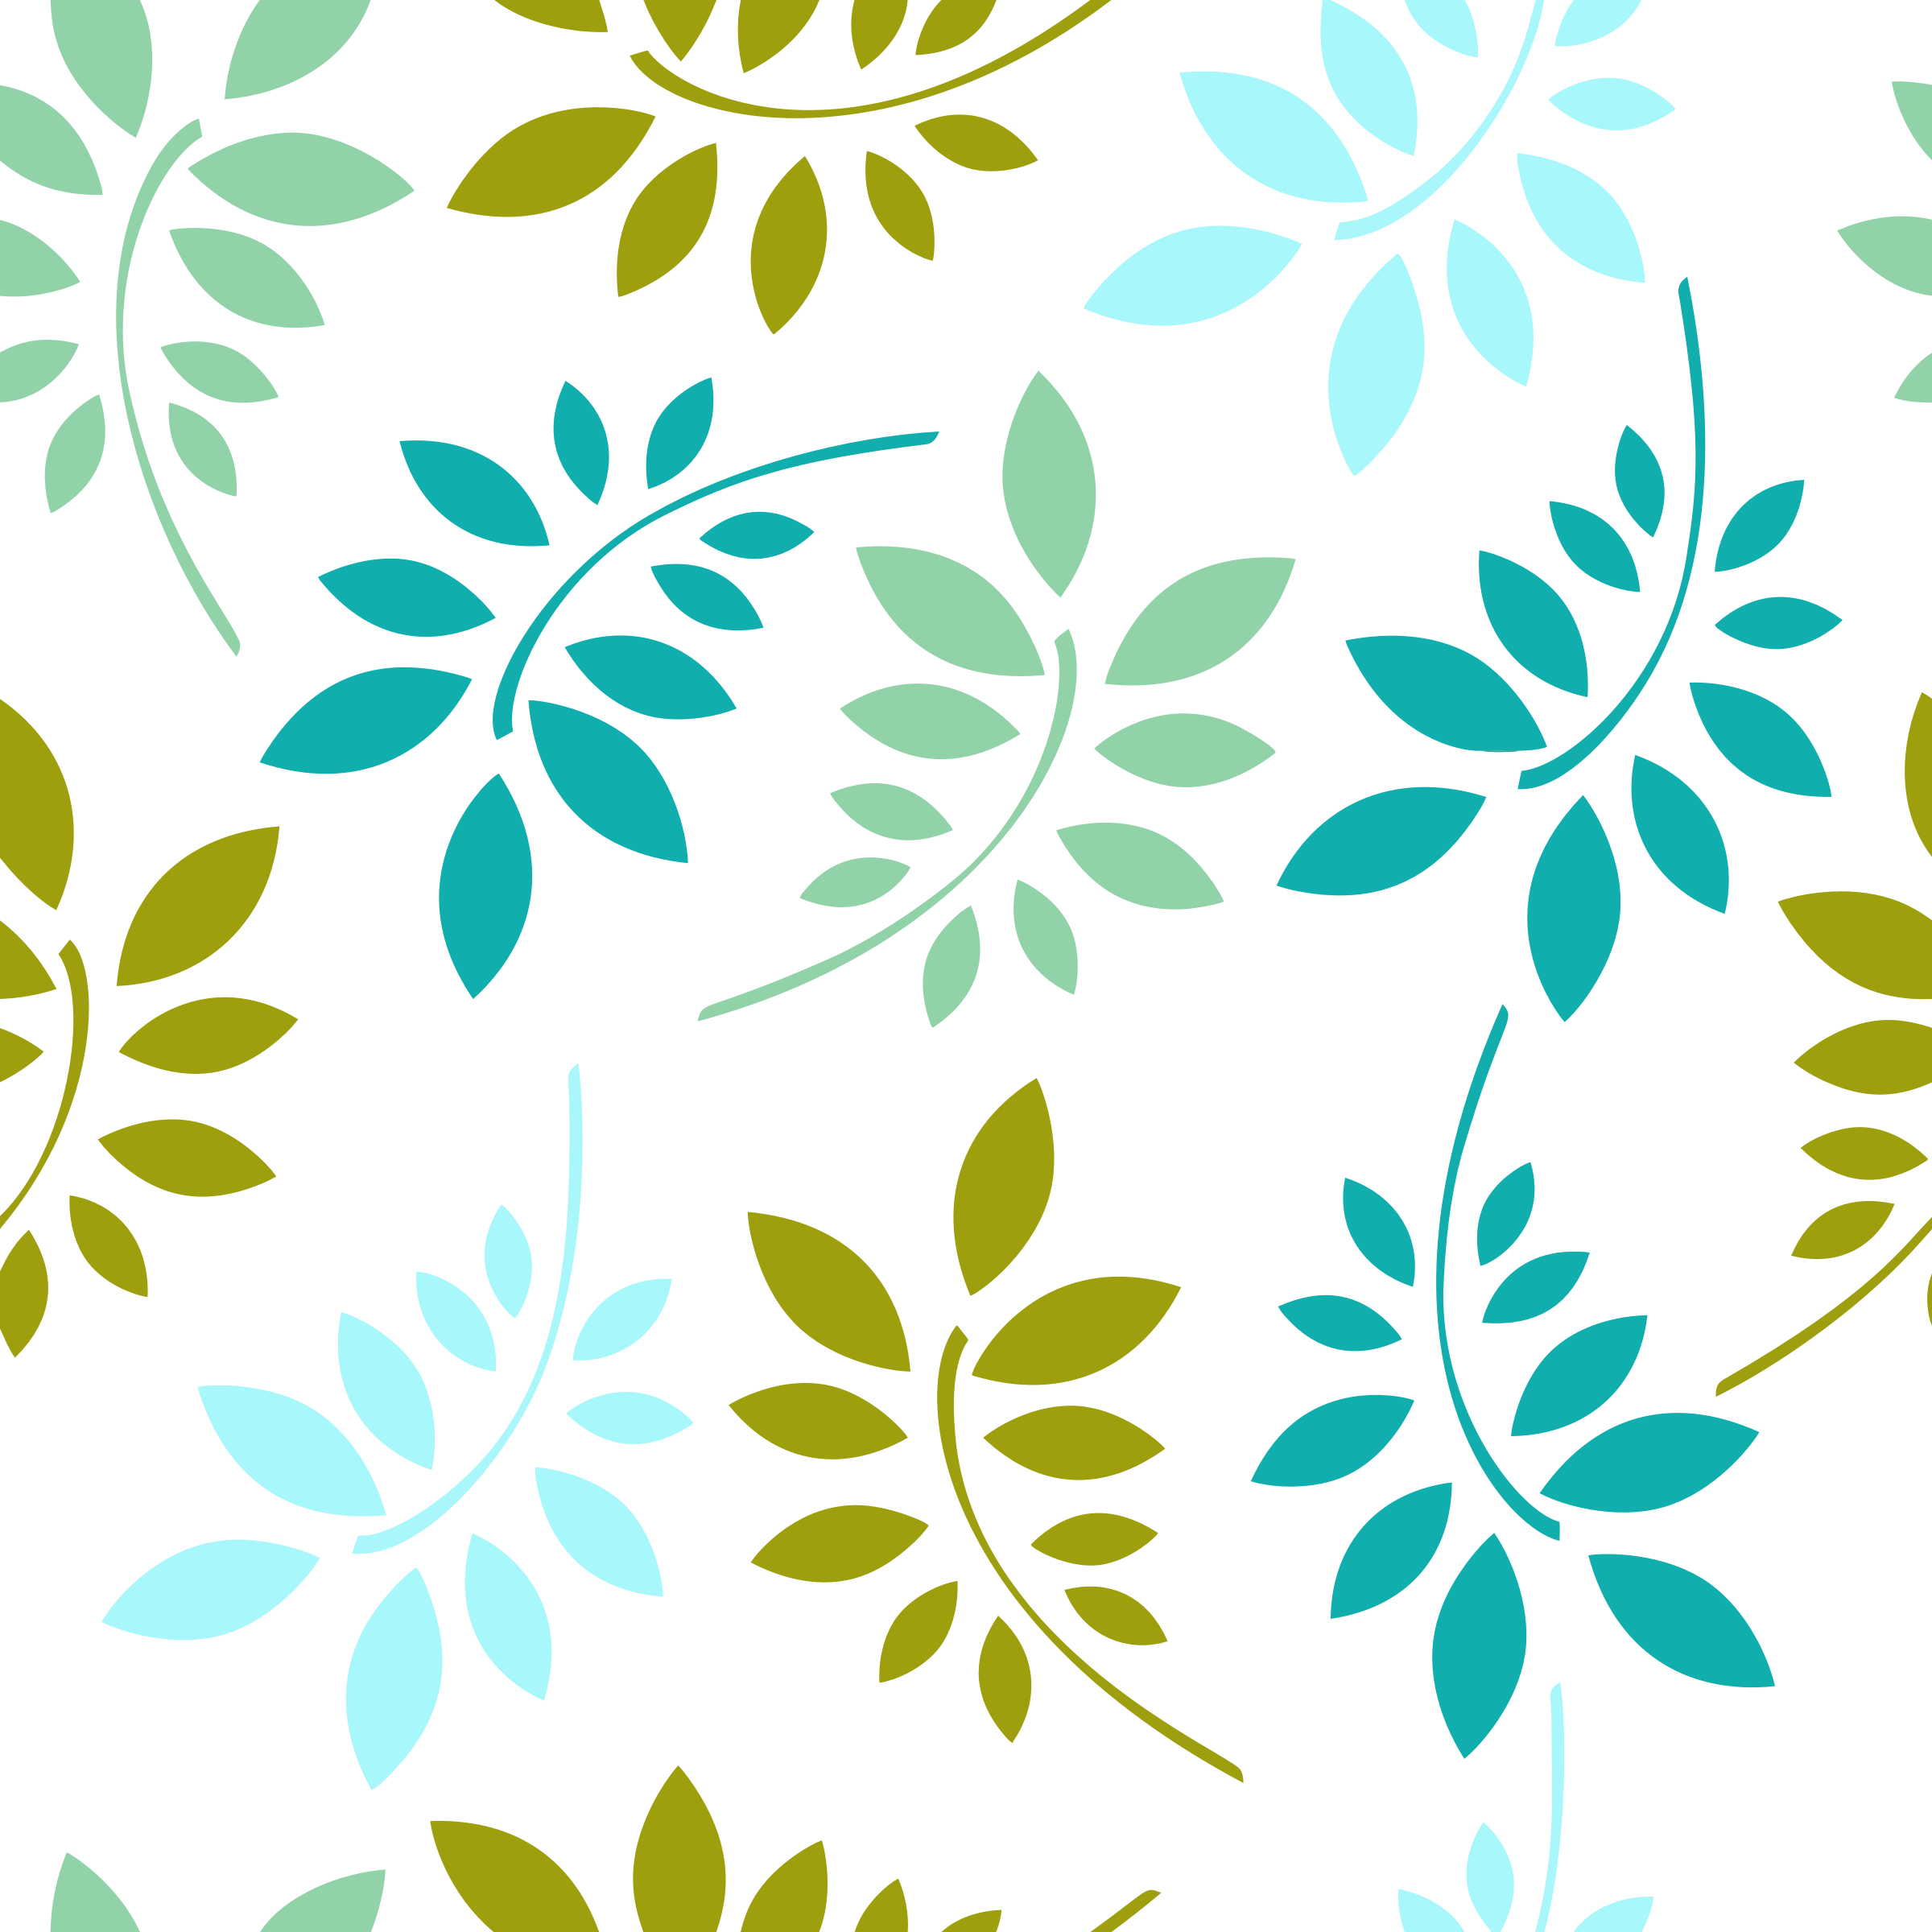 Calendar Background Designs Png : Clipart leaves seamless pattern by karen arnold